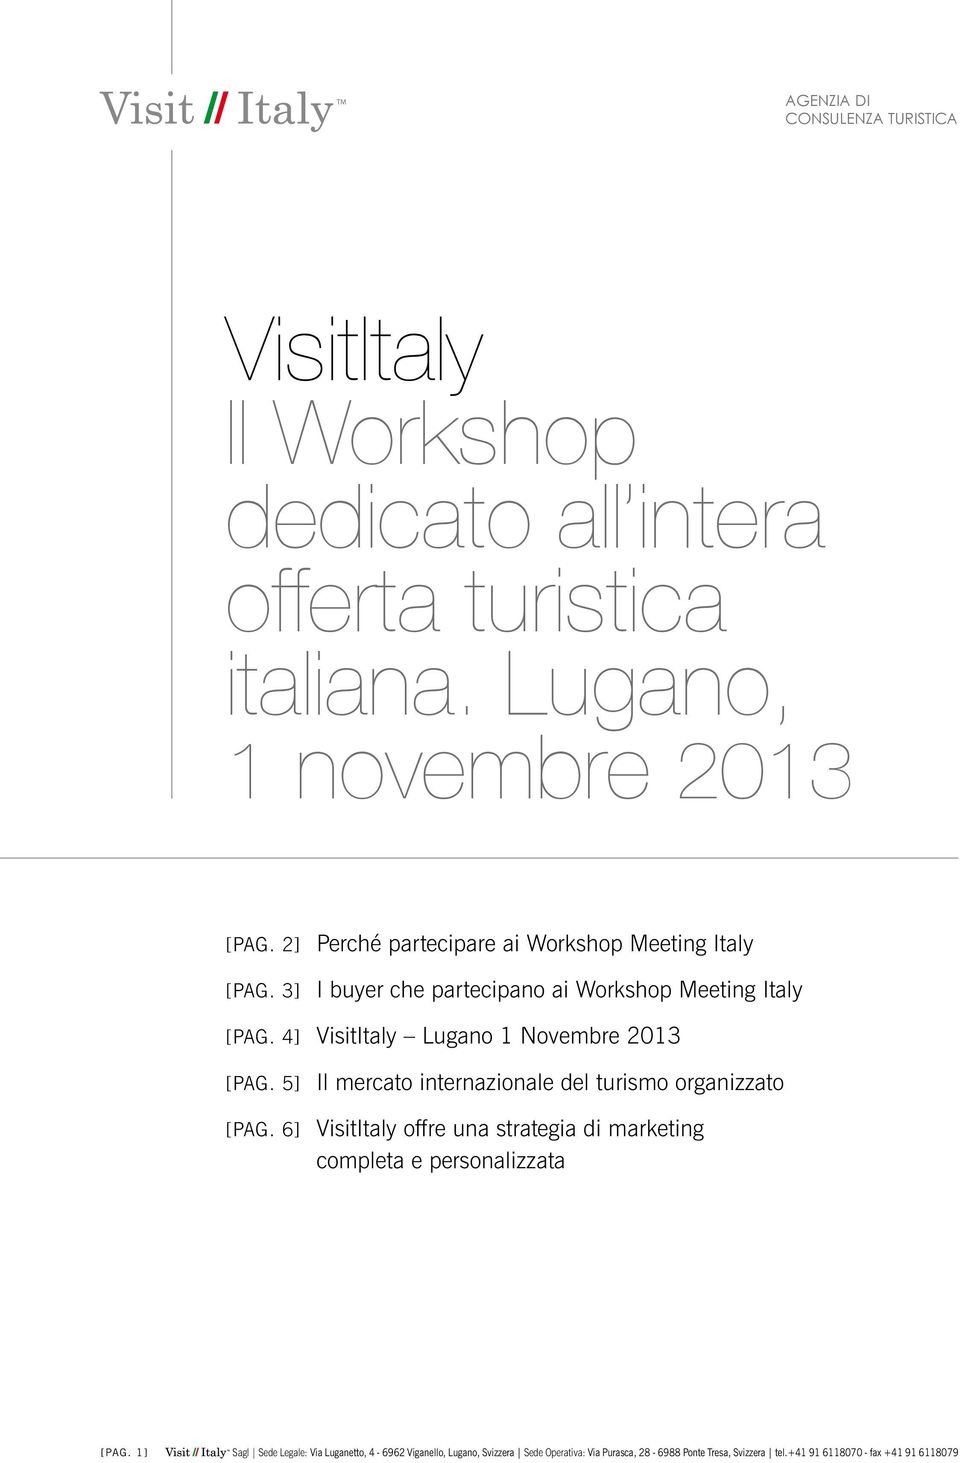 3] I buyer che partecipano ai Workshop Meeting Italy [pag.